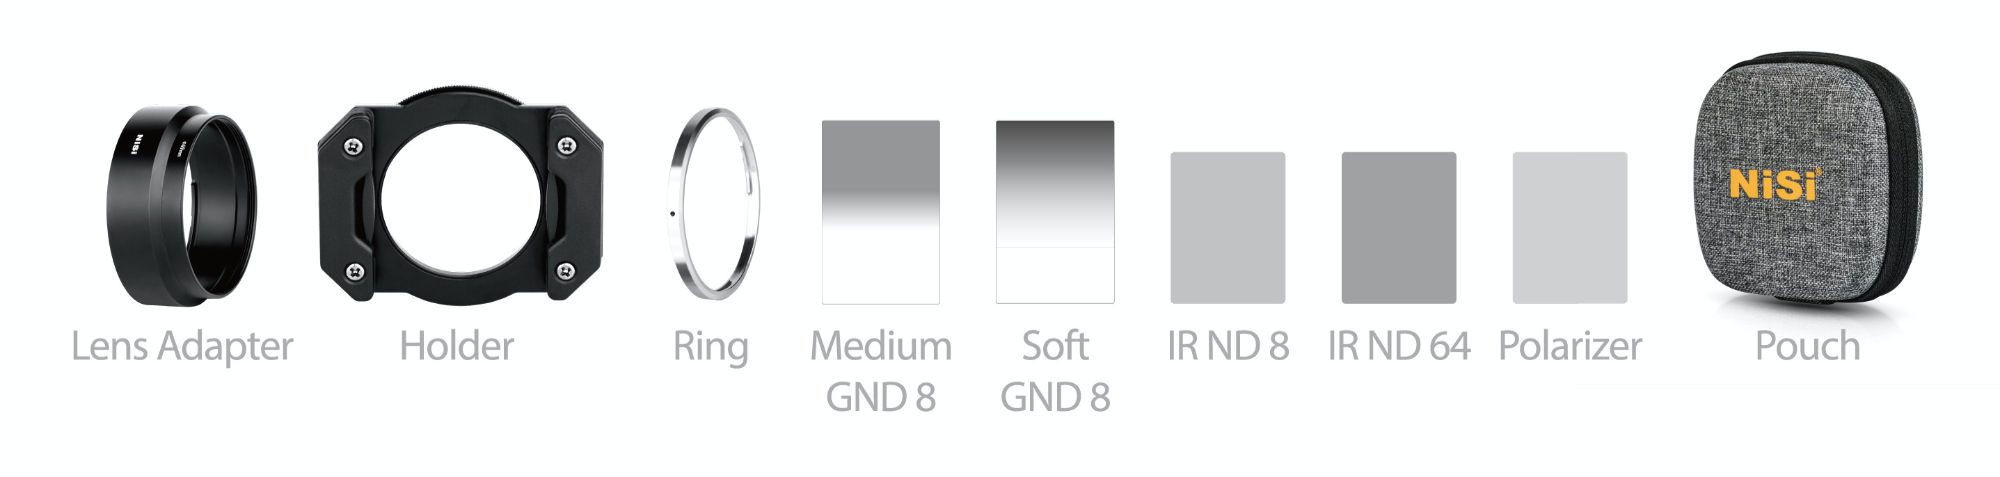 NiSi GR3 Mater Kit Contents